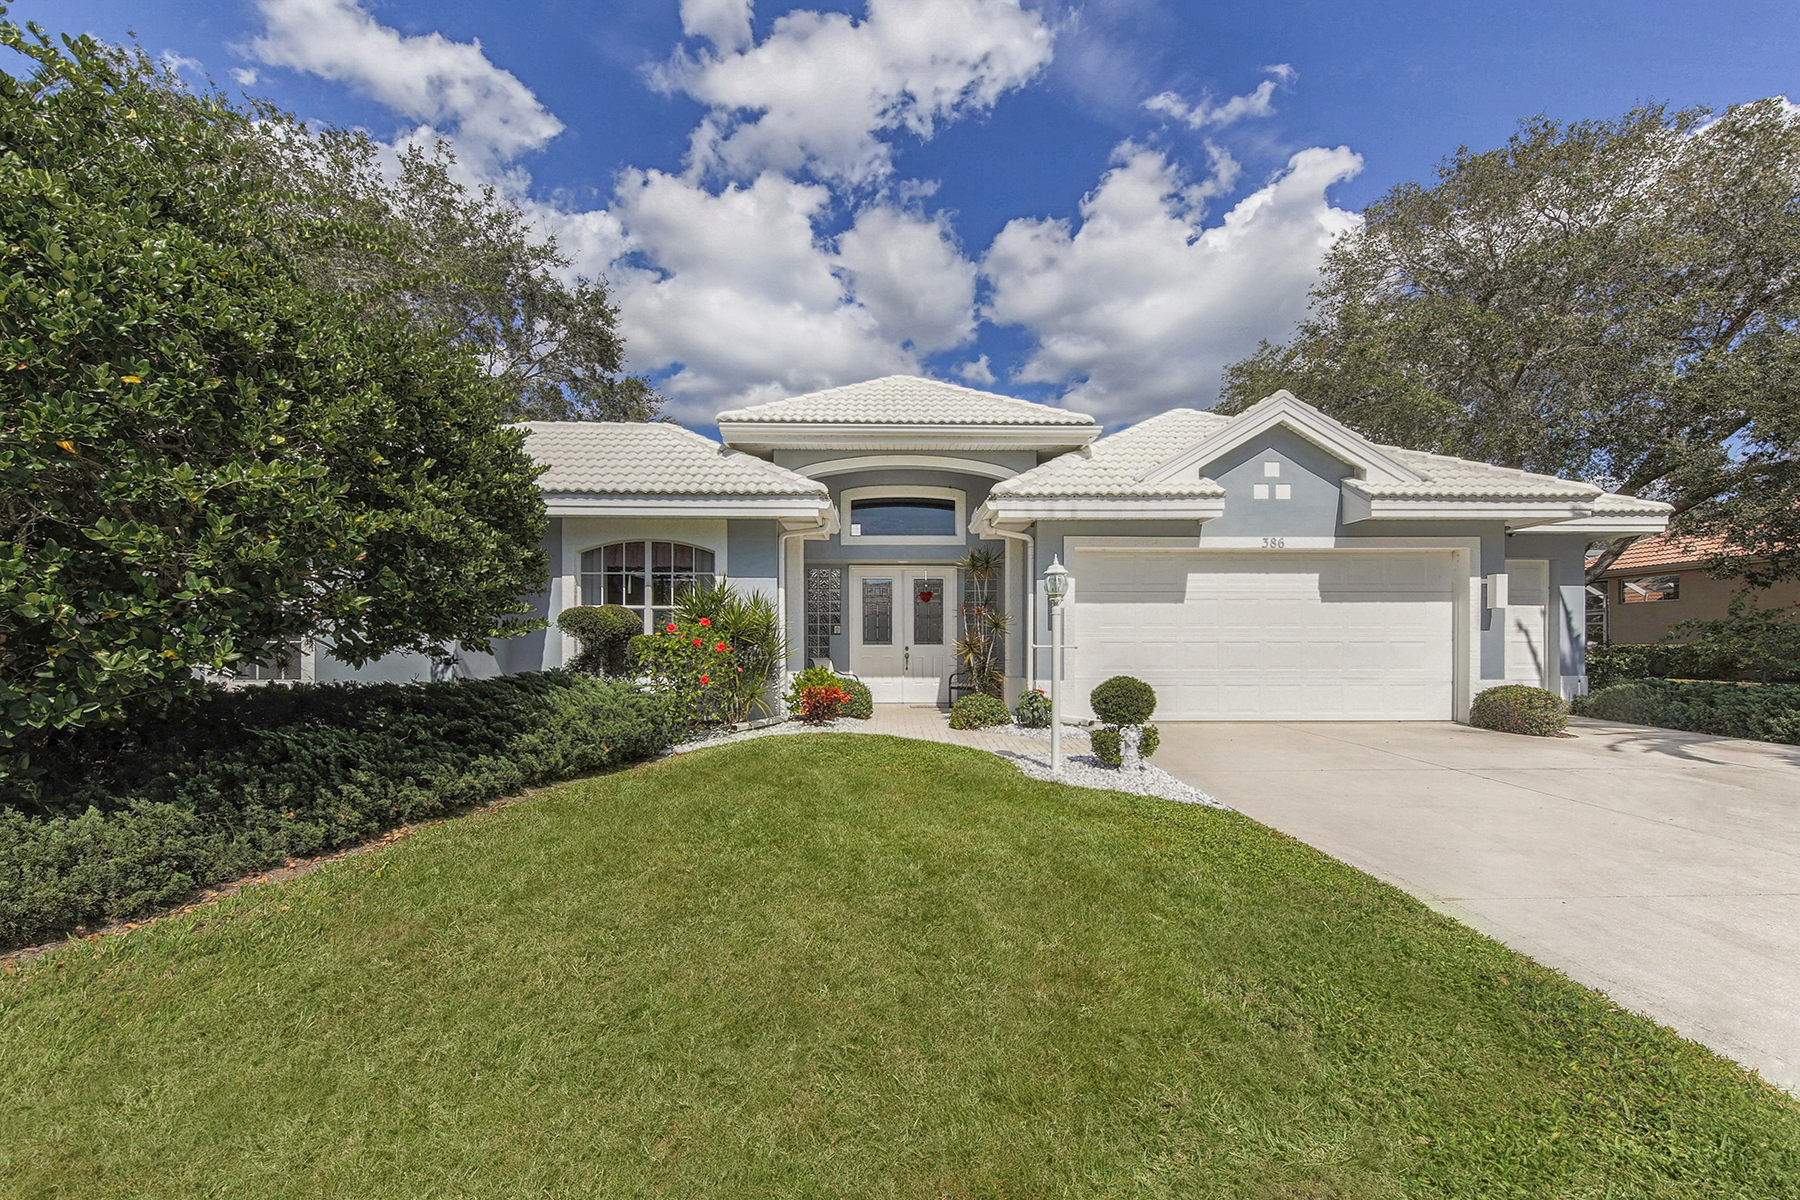 Single Family Home for Sale at VENICE GOLF & COUNTRY CLUB 386 Autumn Chase Dr Venice, Florida, 34292 United States